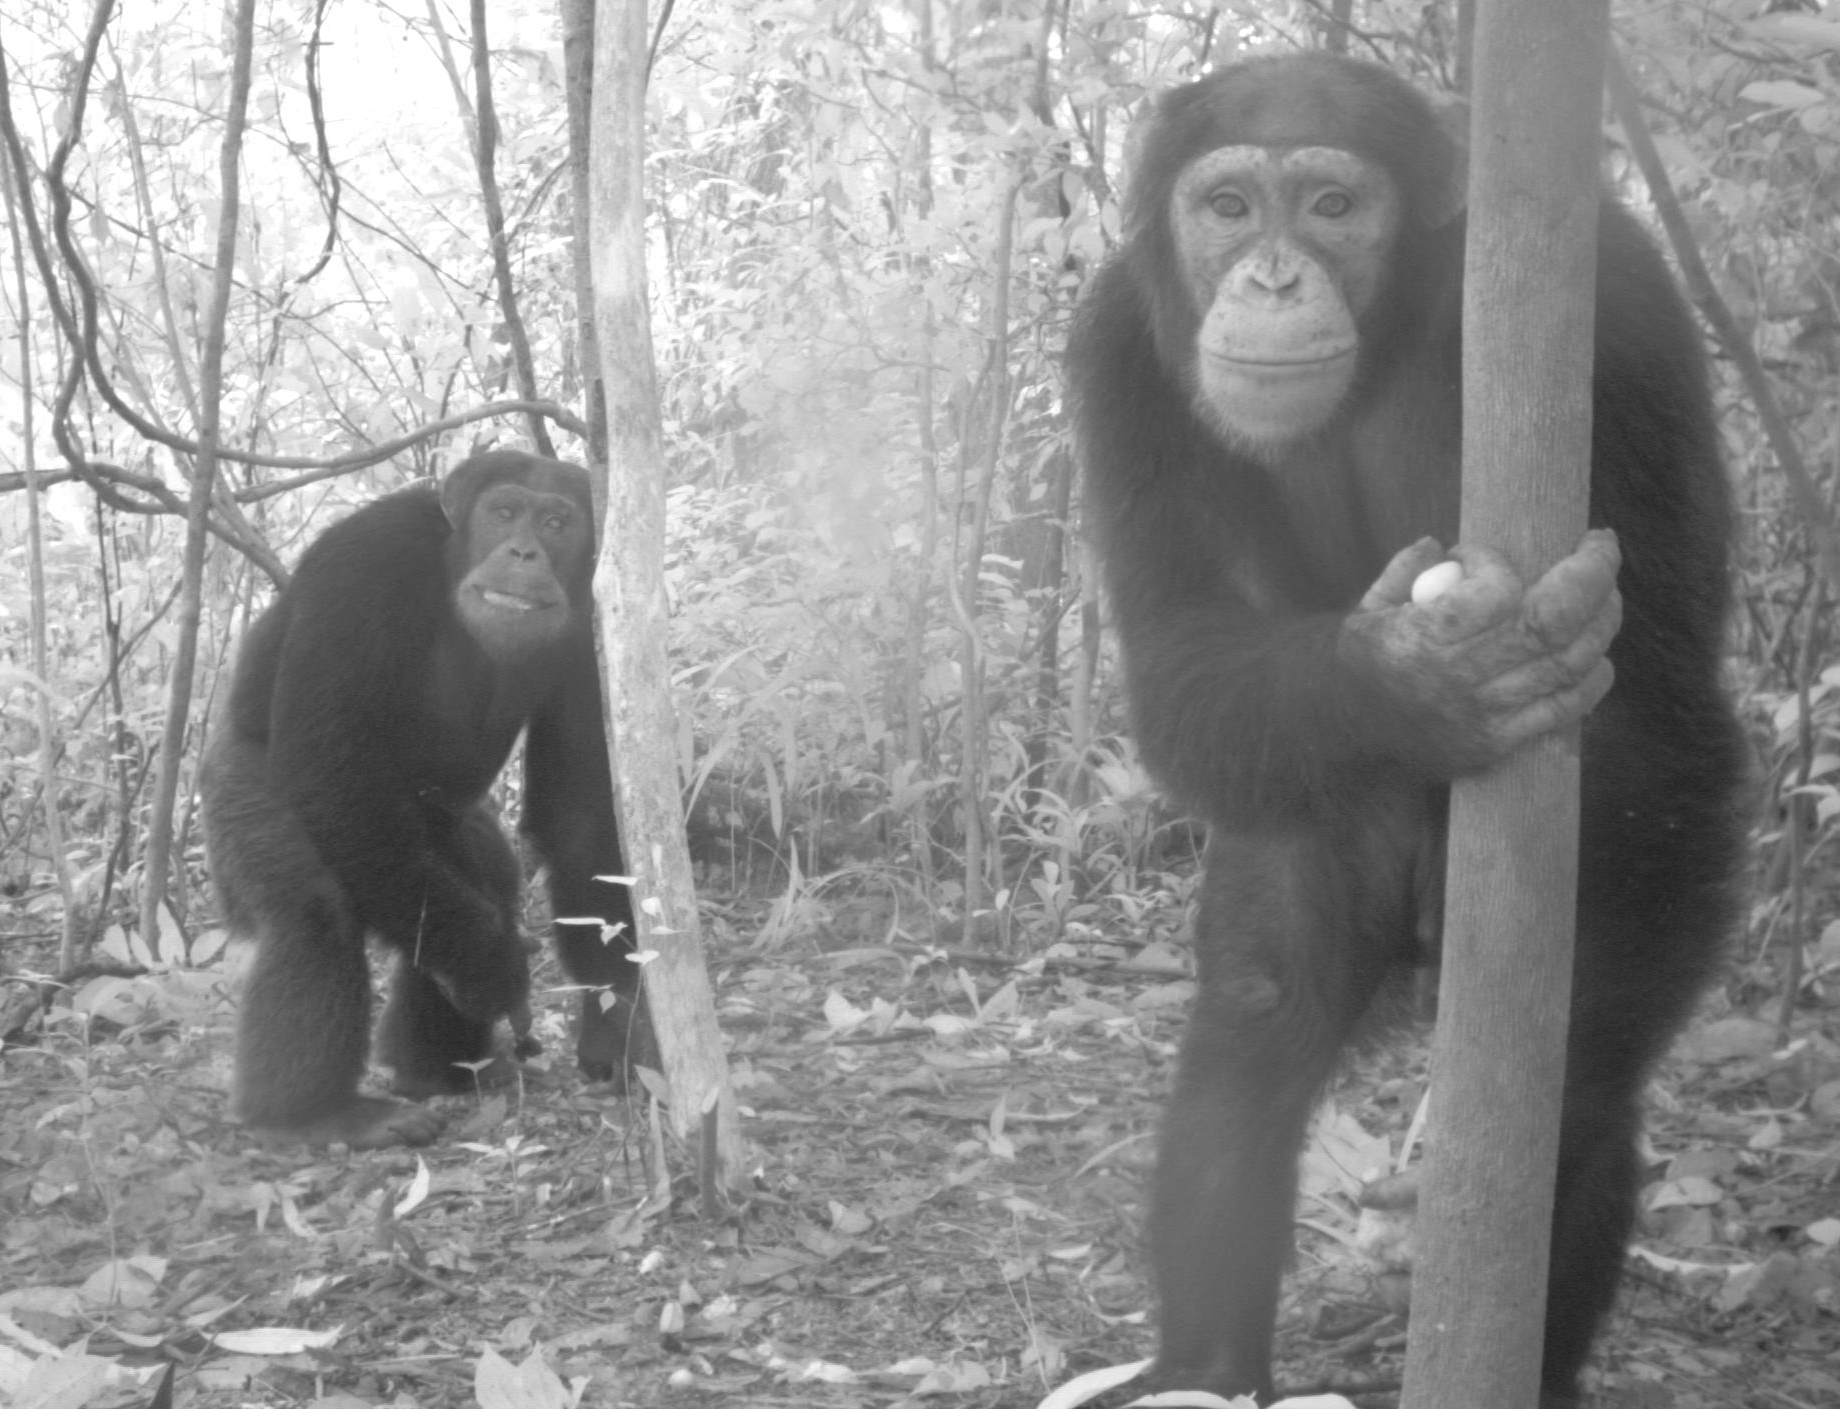 RSPB Chimpanzees GRNP